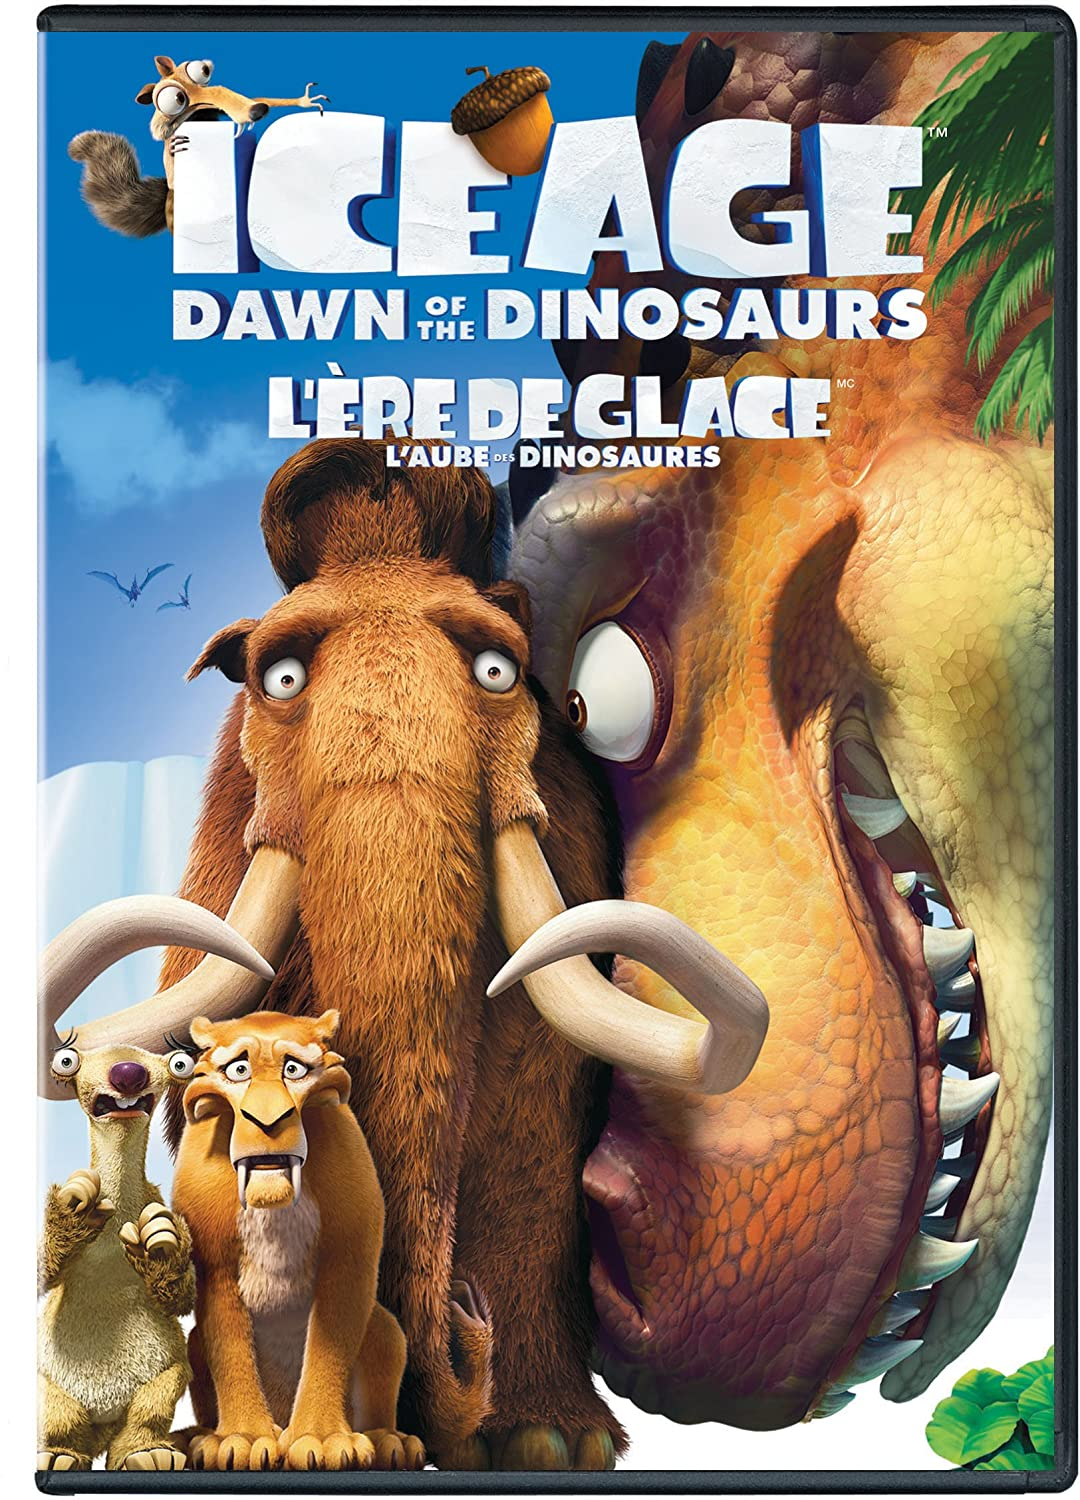 Scratte wallpaper ice age movies wallpapers in jpg format for free.